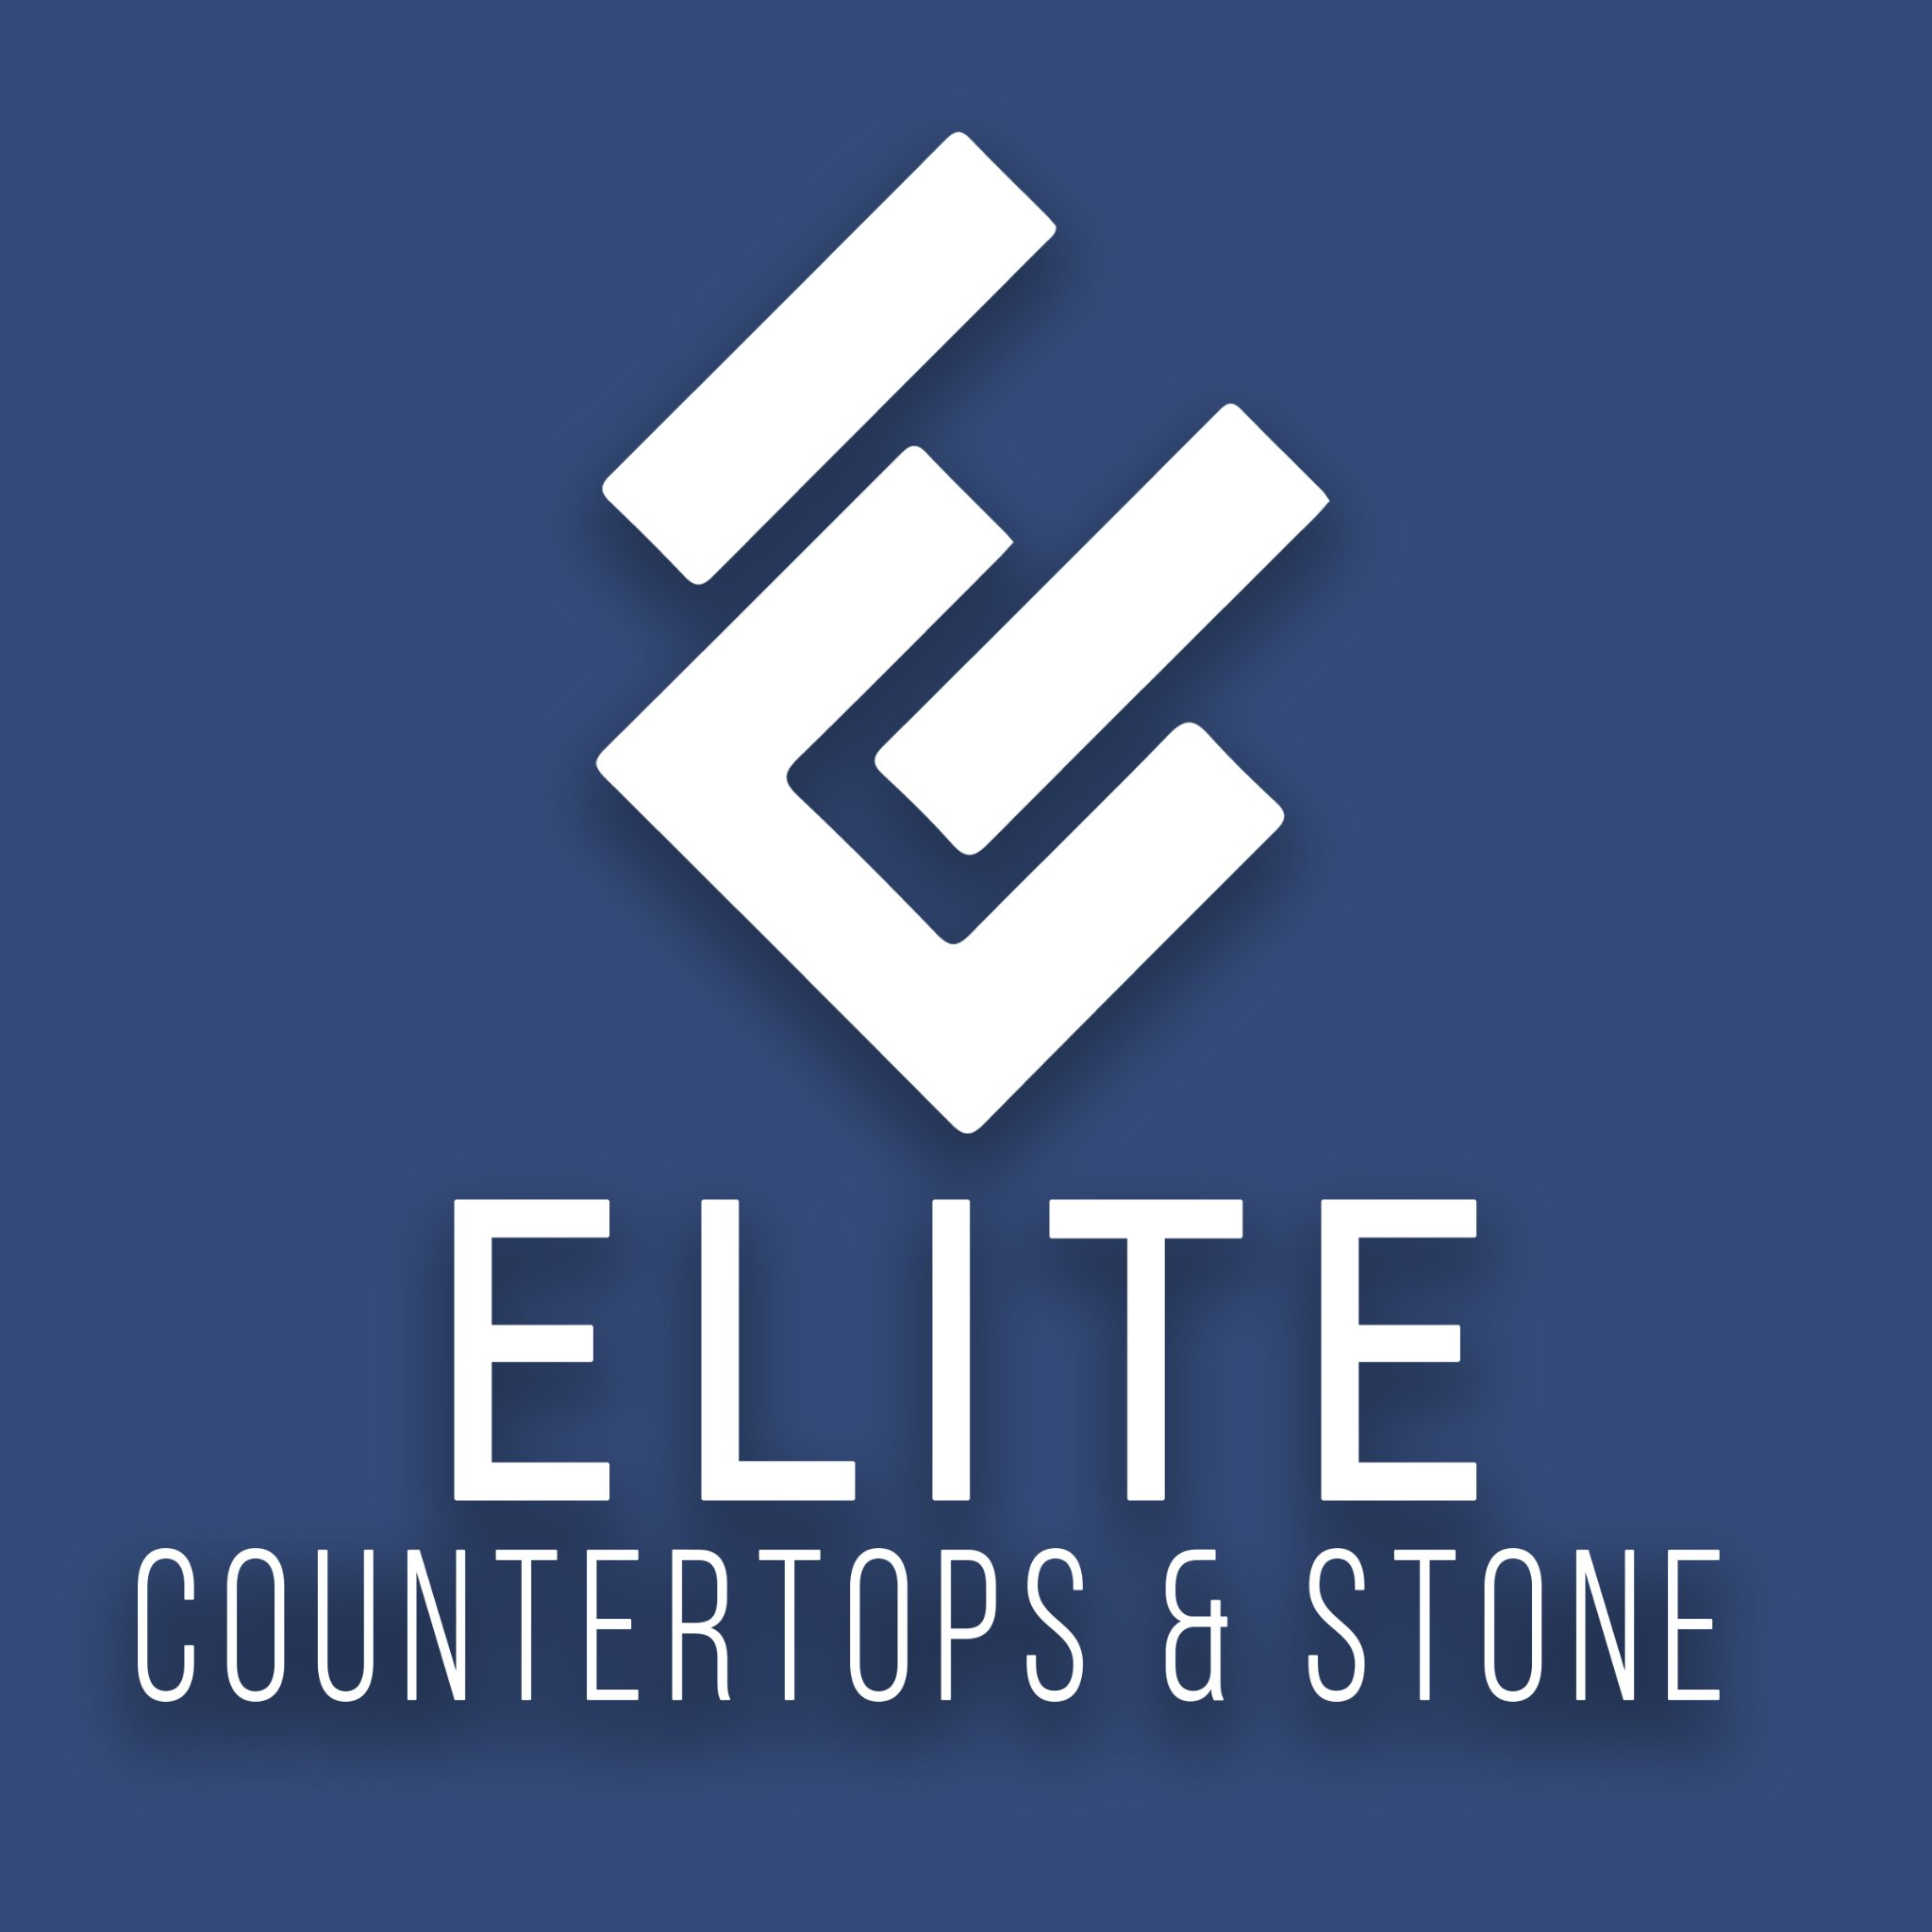 Elite Countertops U0026 Stone (@elitecounters) | Twitter